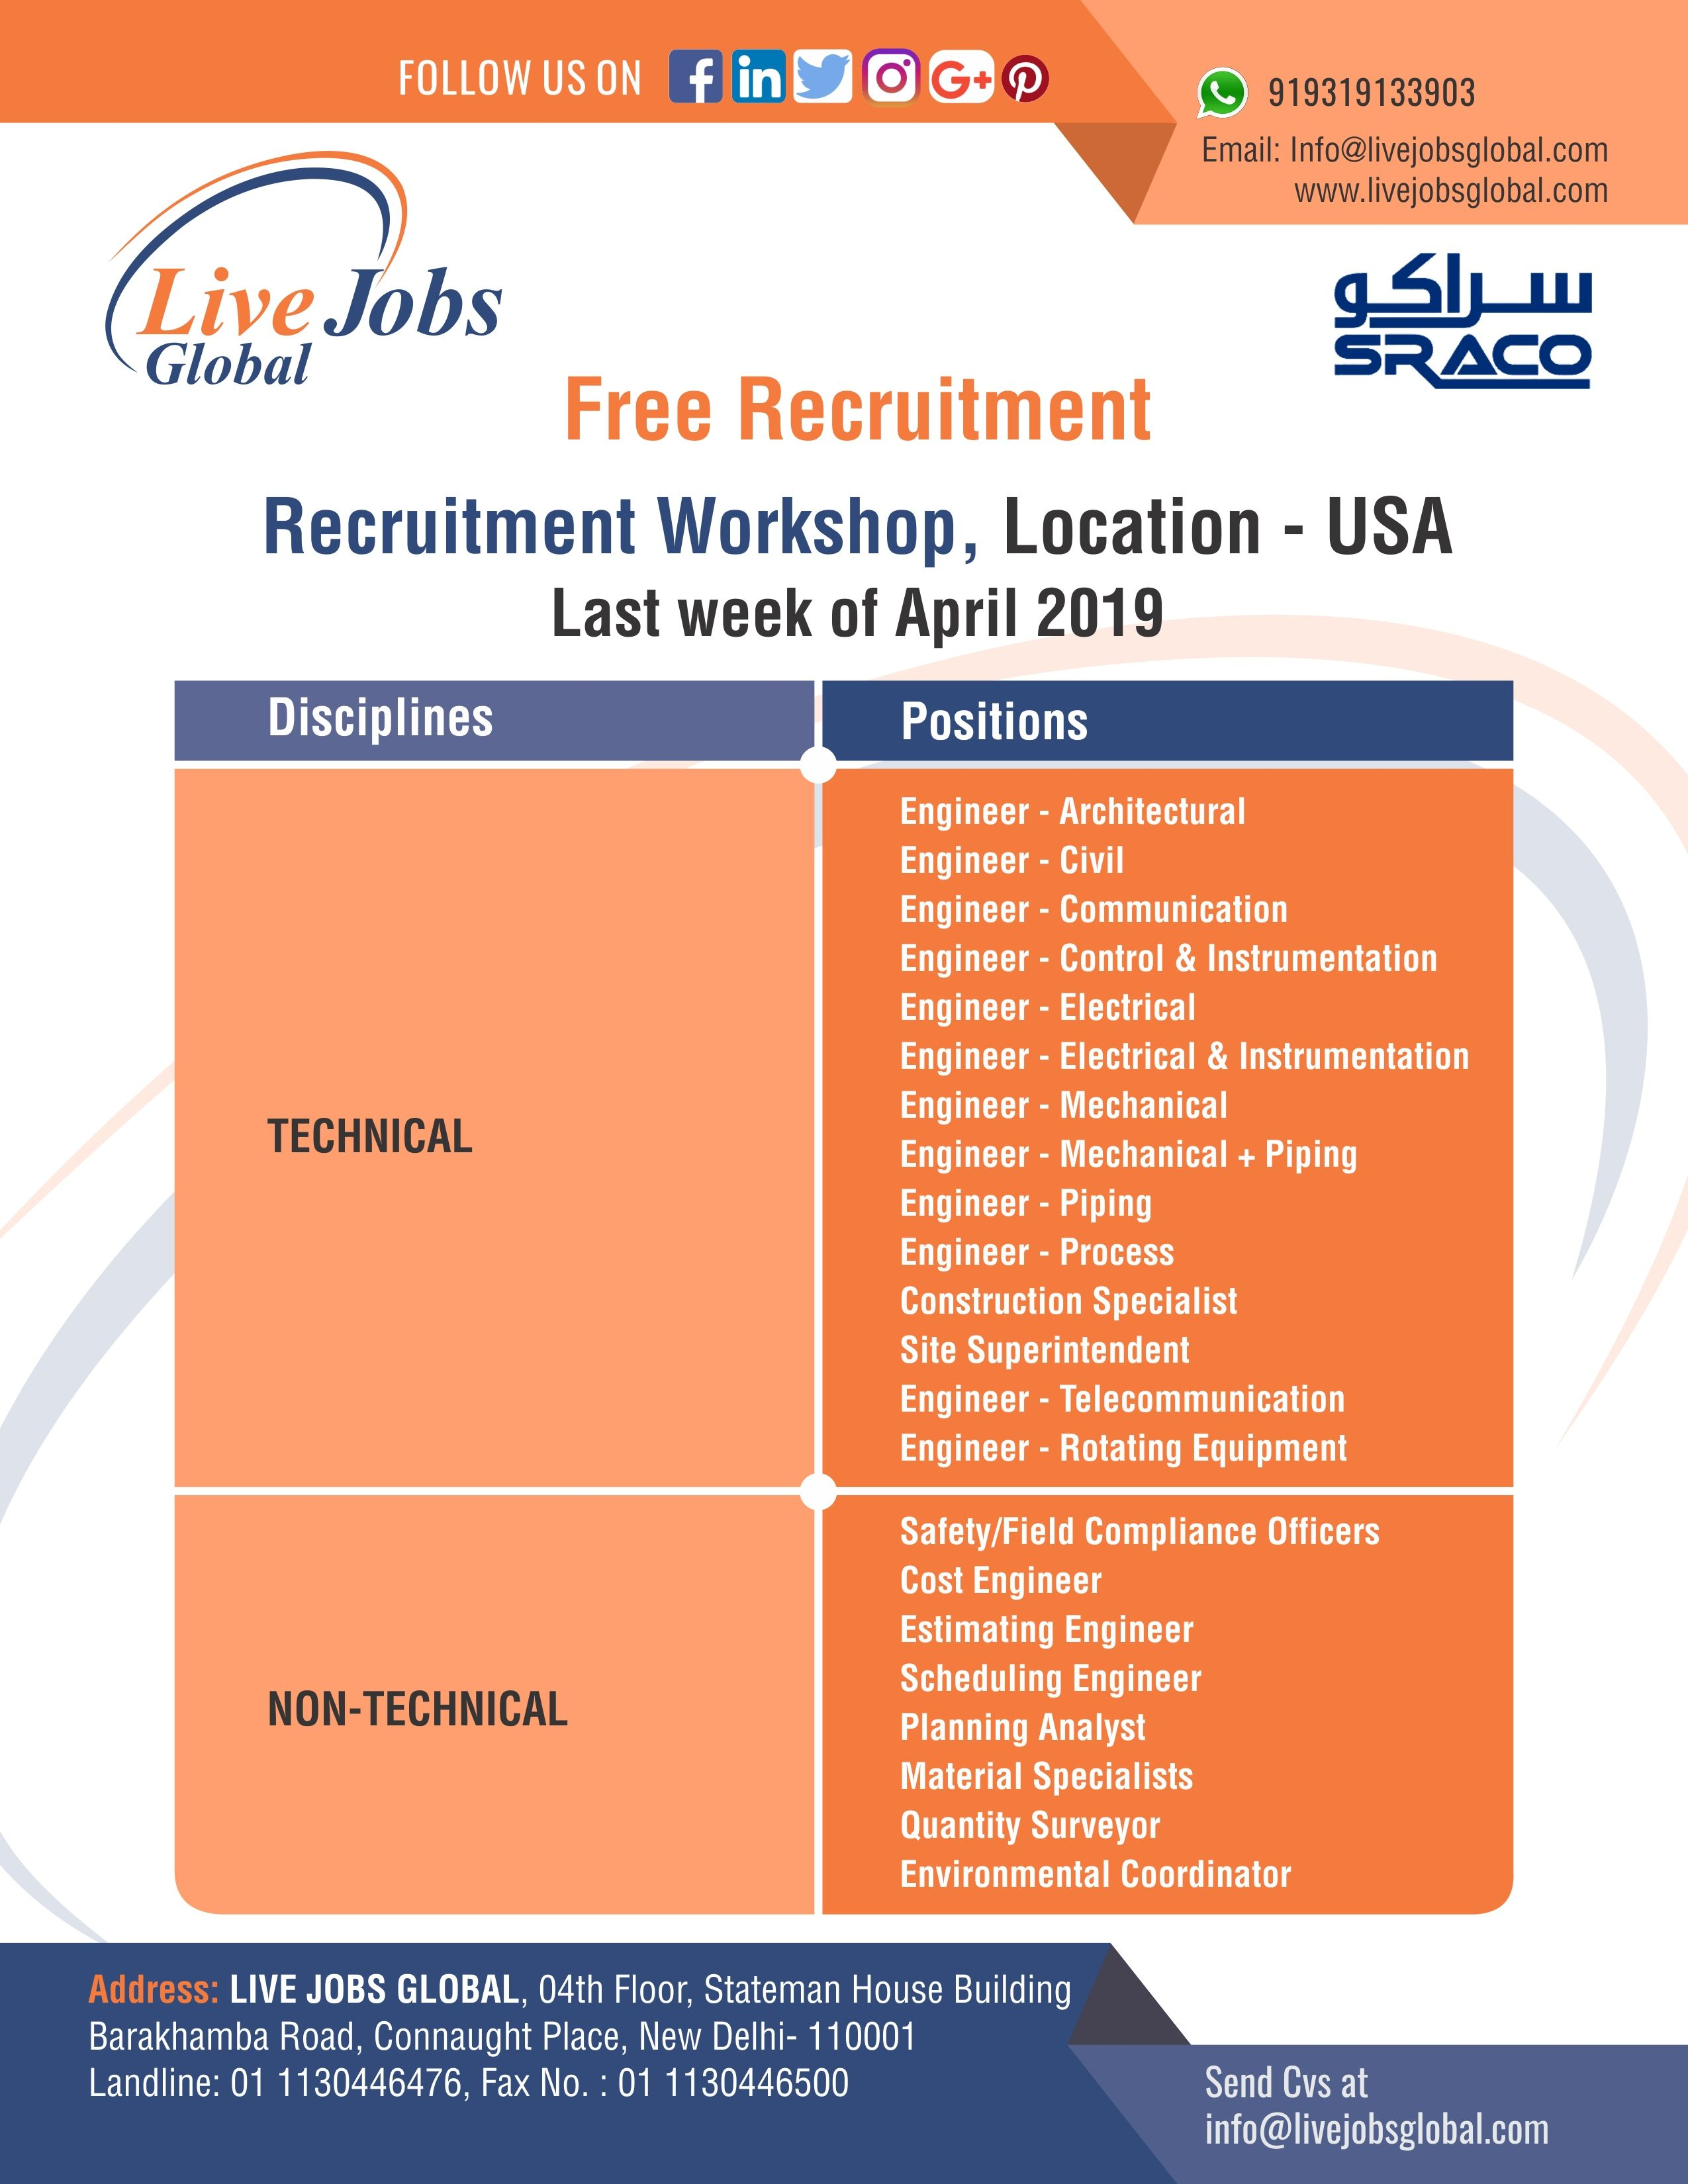 Recruitment Workshop At Usa In Last Week Of April 2019 For The Technical And Non Technical Positions F Recruitment Agencies Recruitment Recruitment Services